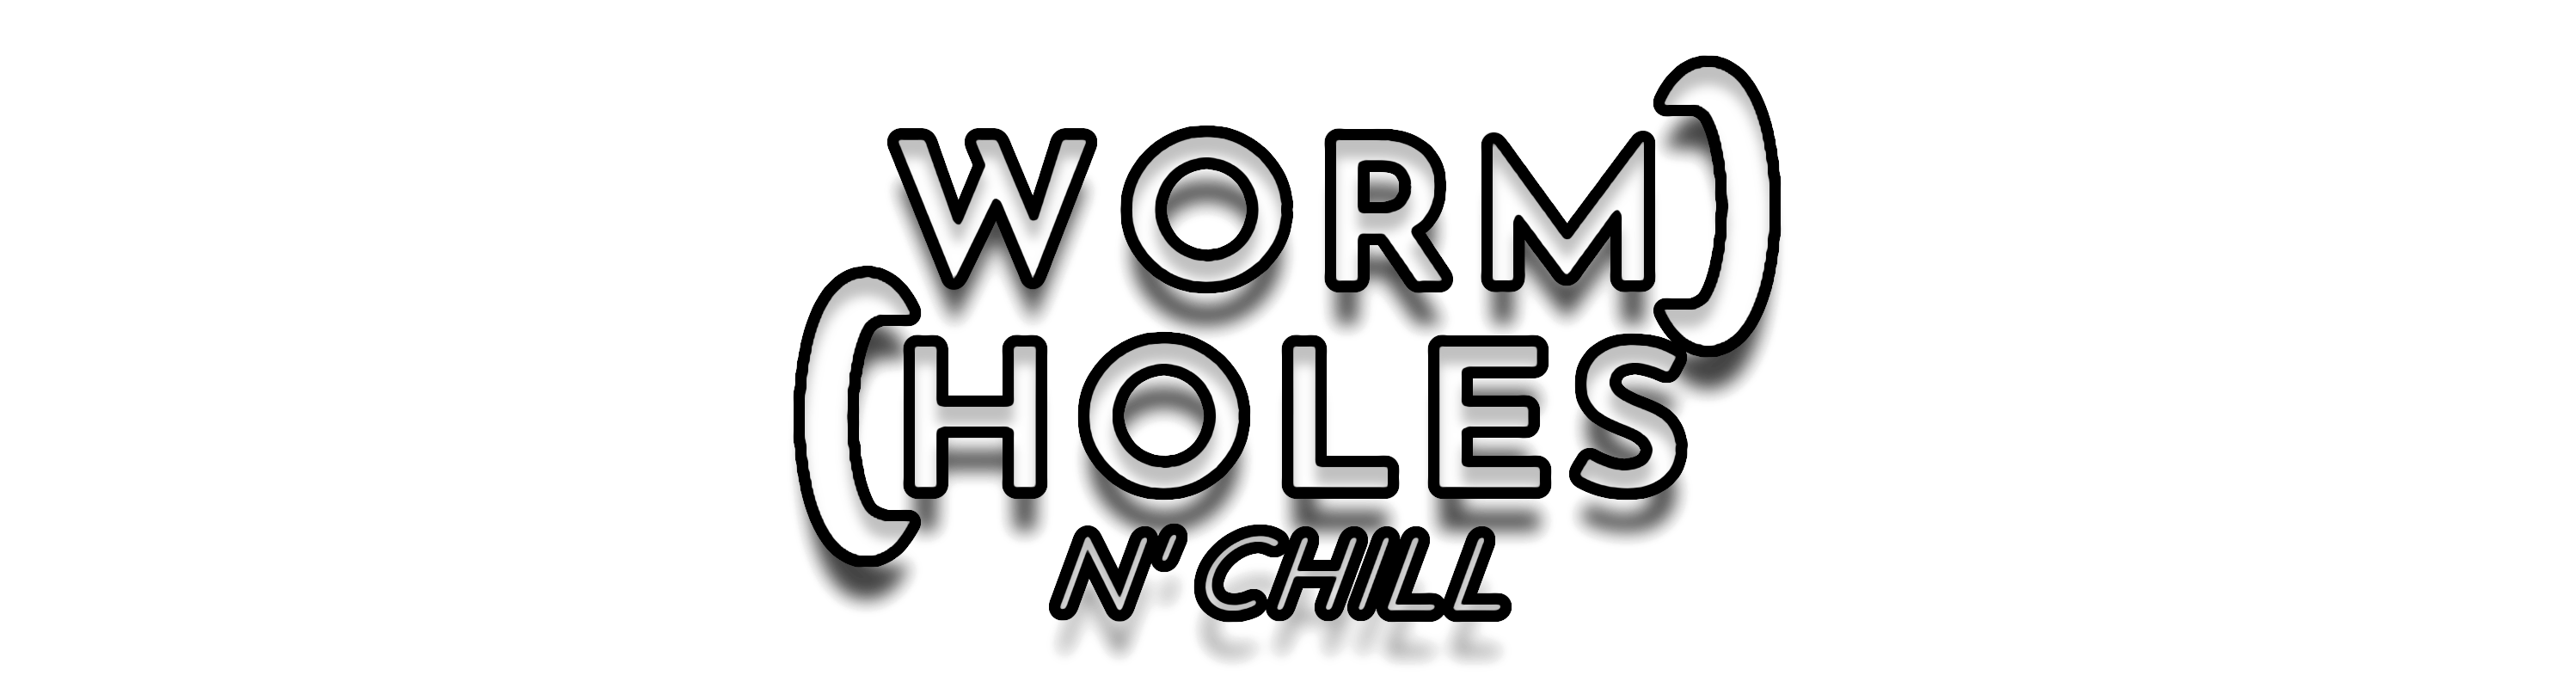 WORMHOLES n' chill